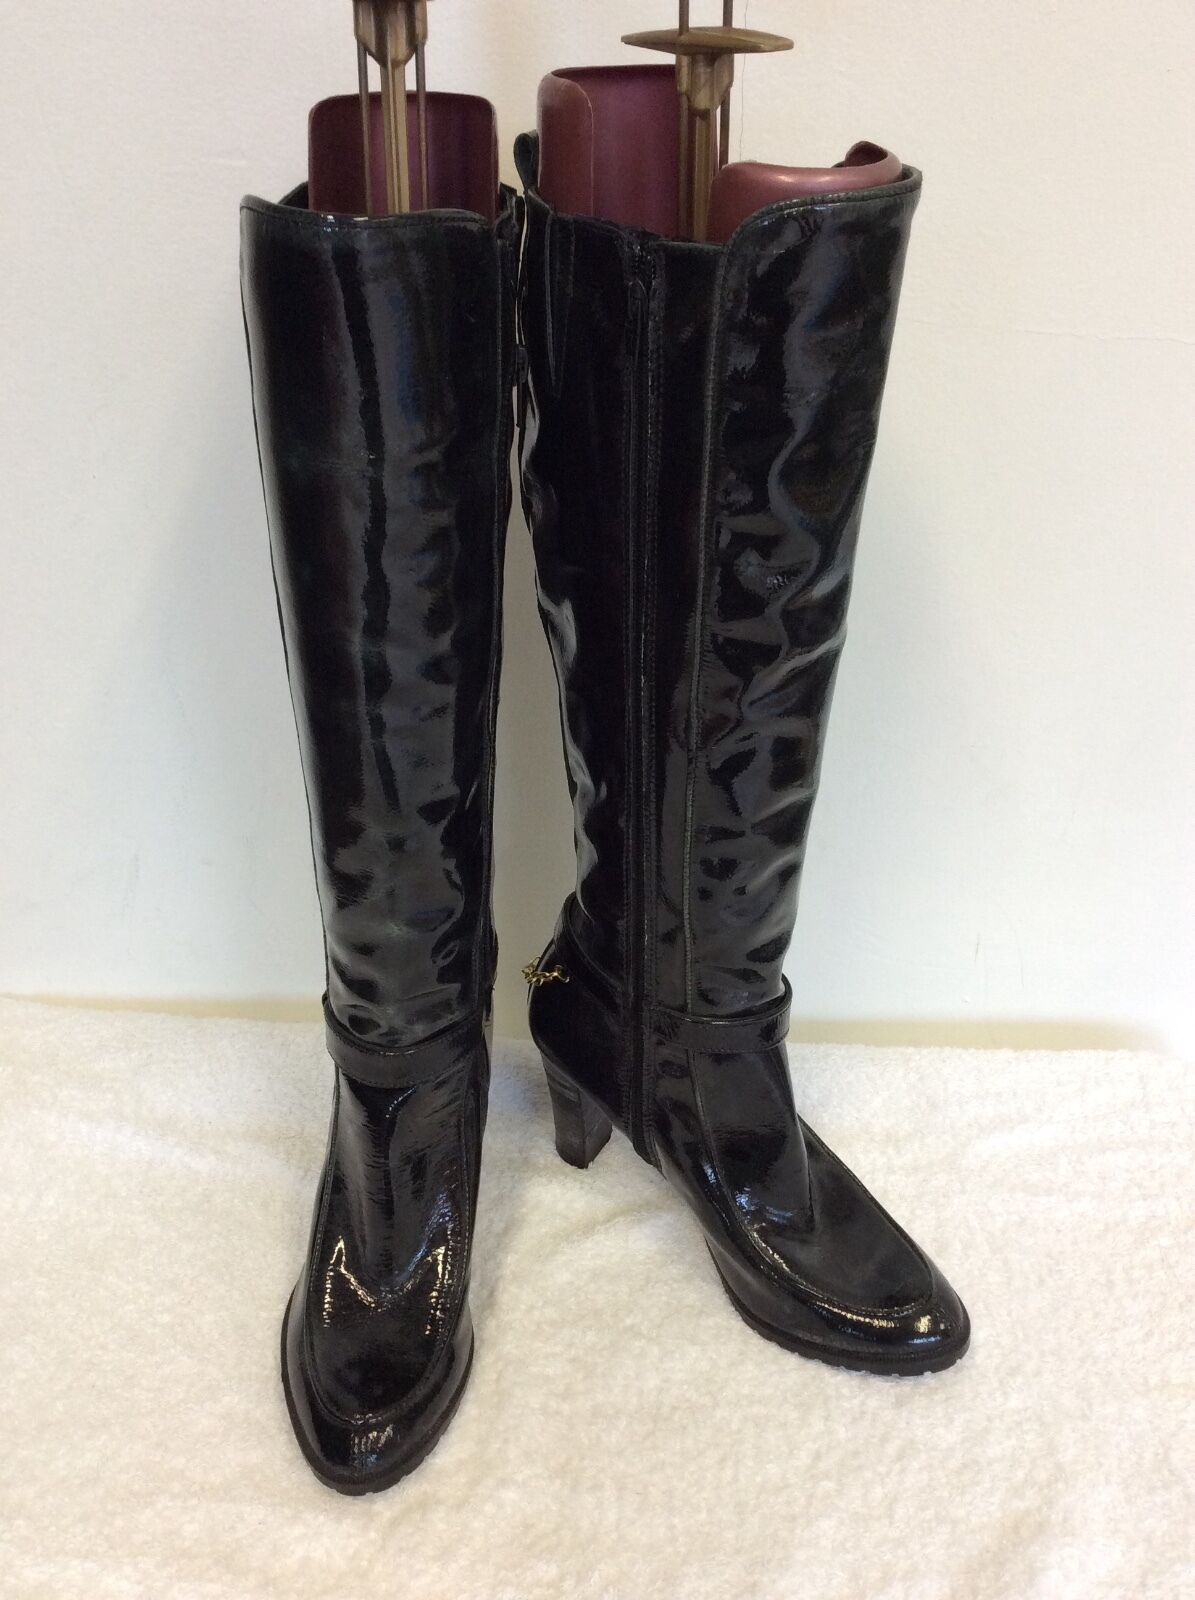 BRAND NEW BRONX VERY DARK GREEN PATENT LEATHER BOOTS SIZE 3.5  36